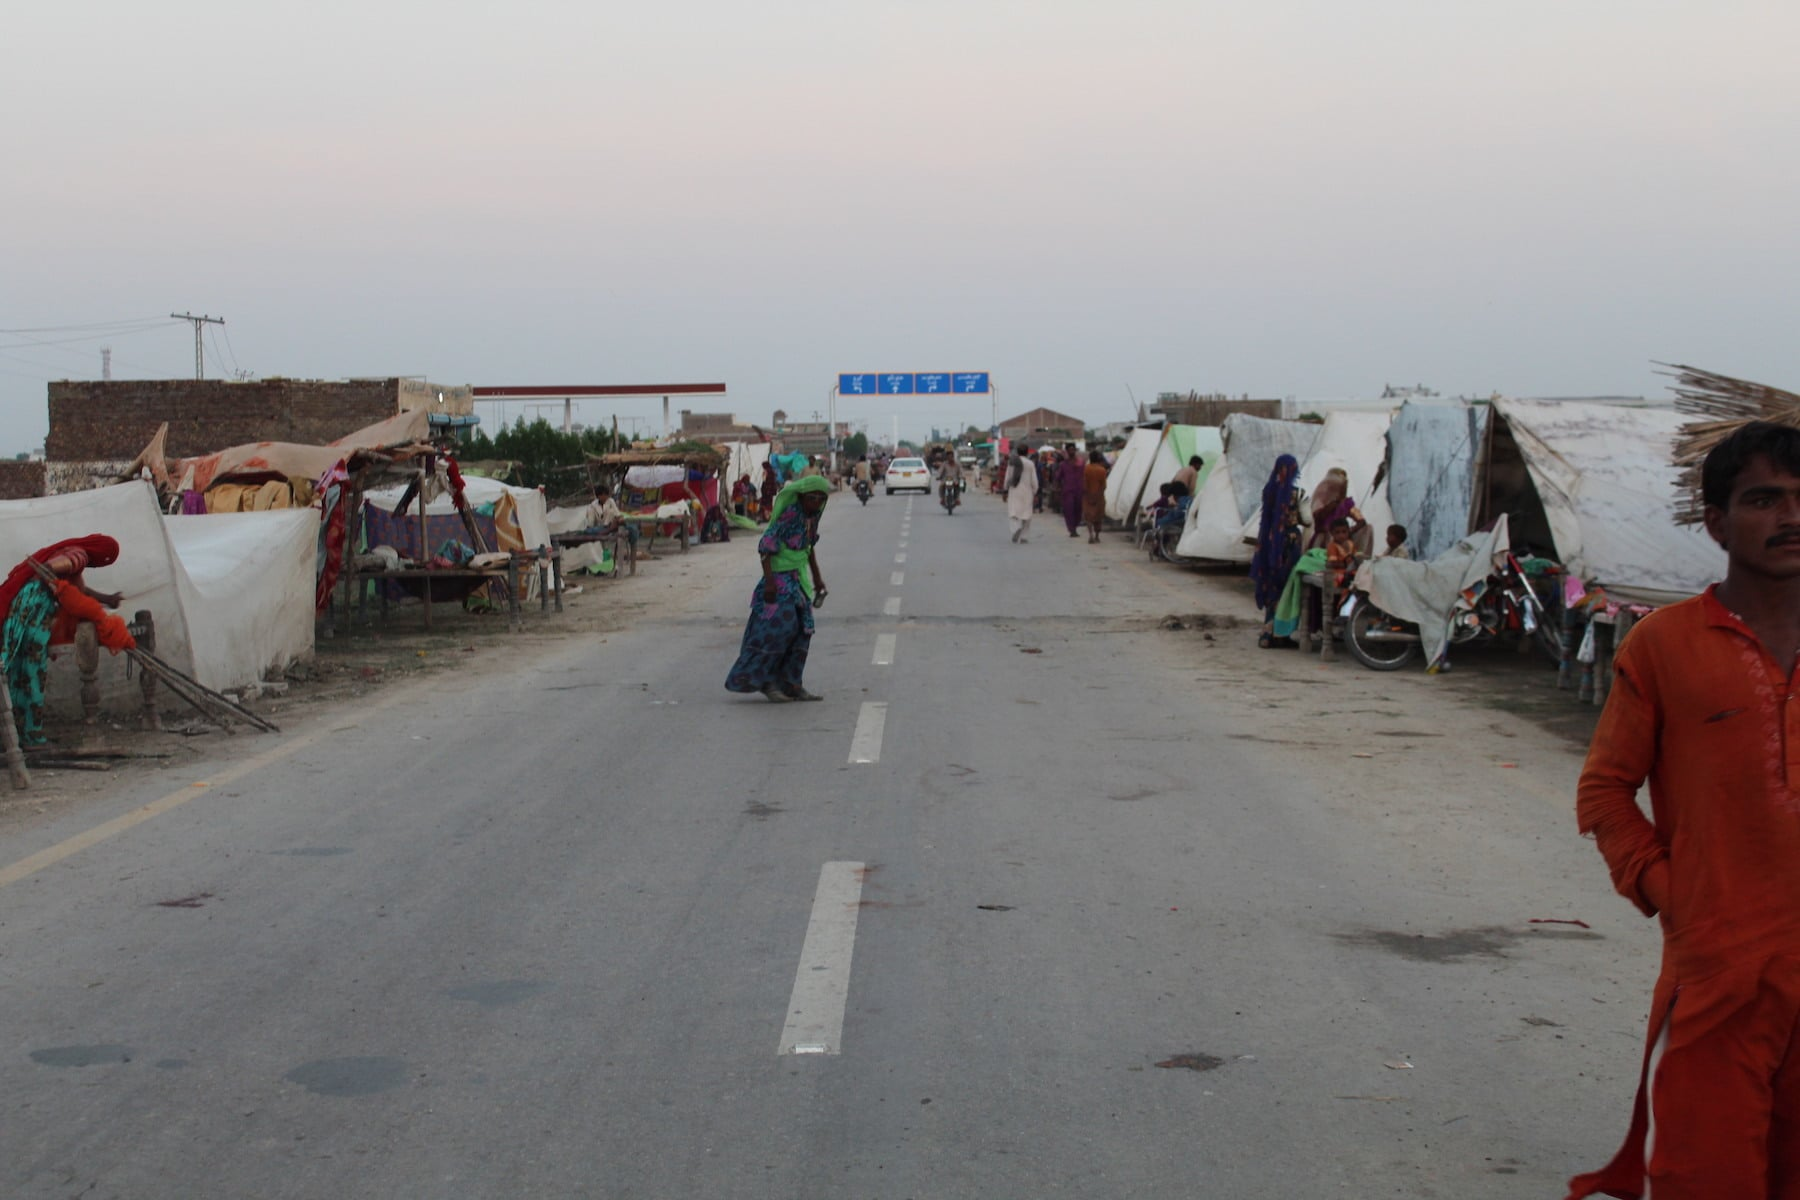 Villagers have set up make-shift tents on both sides of the road, which is higher than the lands surrounding it. Hundreds of thousands of people have been displaced in Mirpurkhas division in the aftermath of the torrential rains. — Photo by author